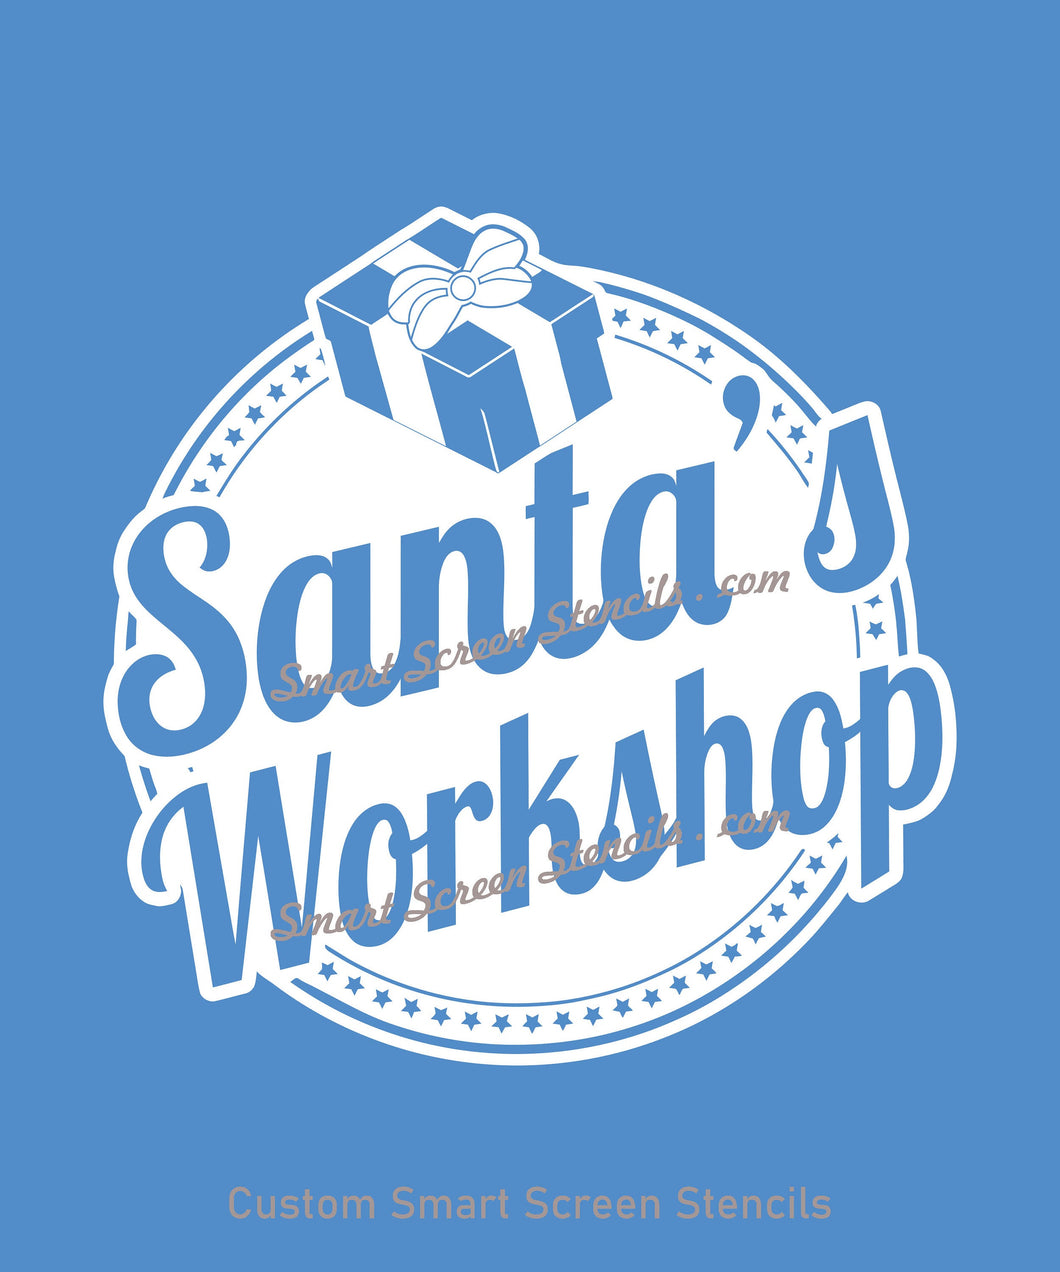 Santa's Workshop SilkScreen Stencil - Reusable, Self Adhesive - Wood, Fabric, Ceramics, Tile, Glass, Textile, Metal, Cards, Paper, Plastic.